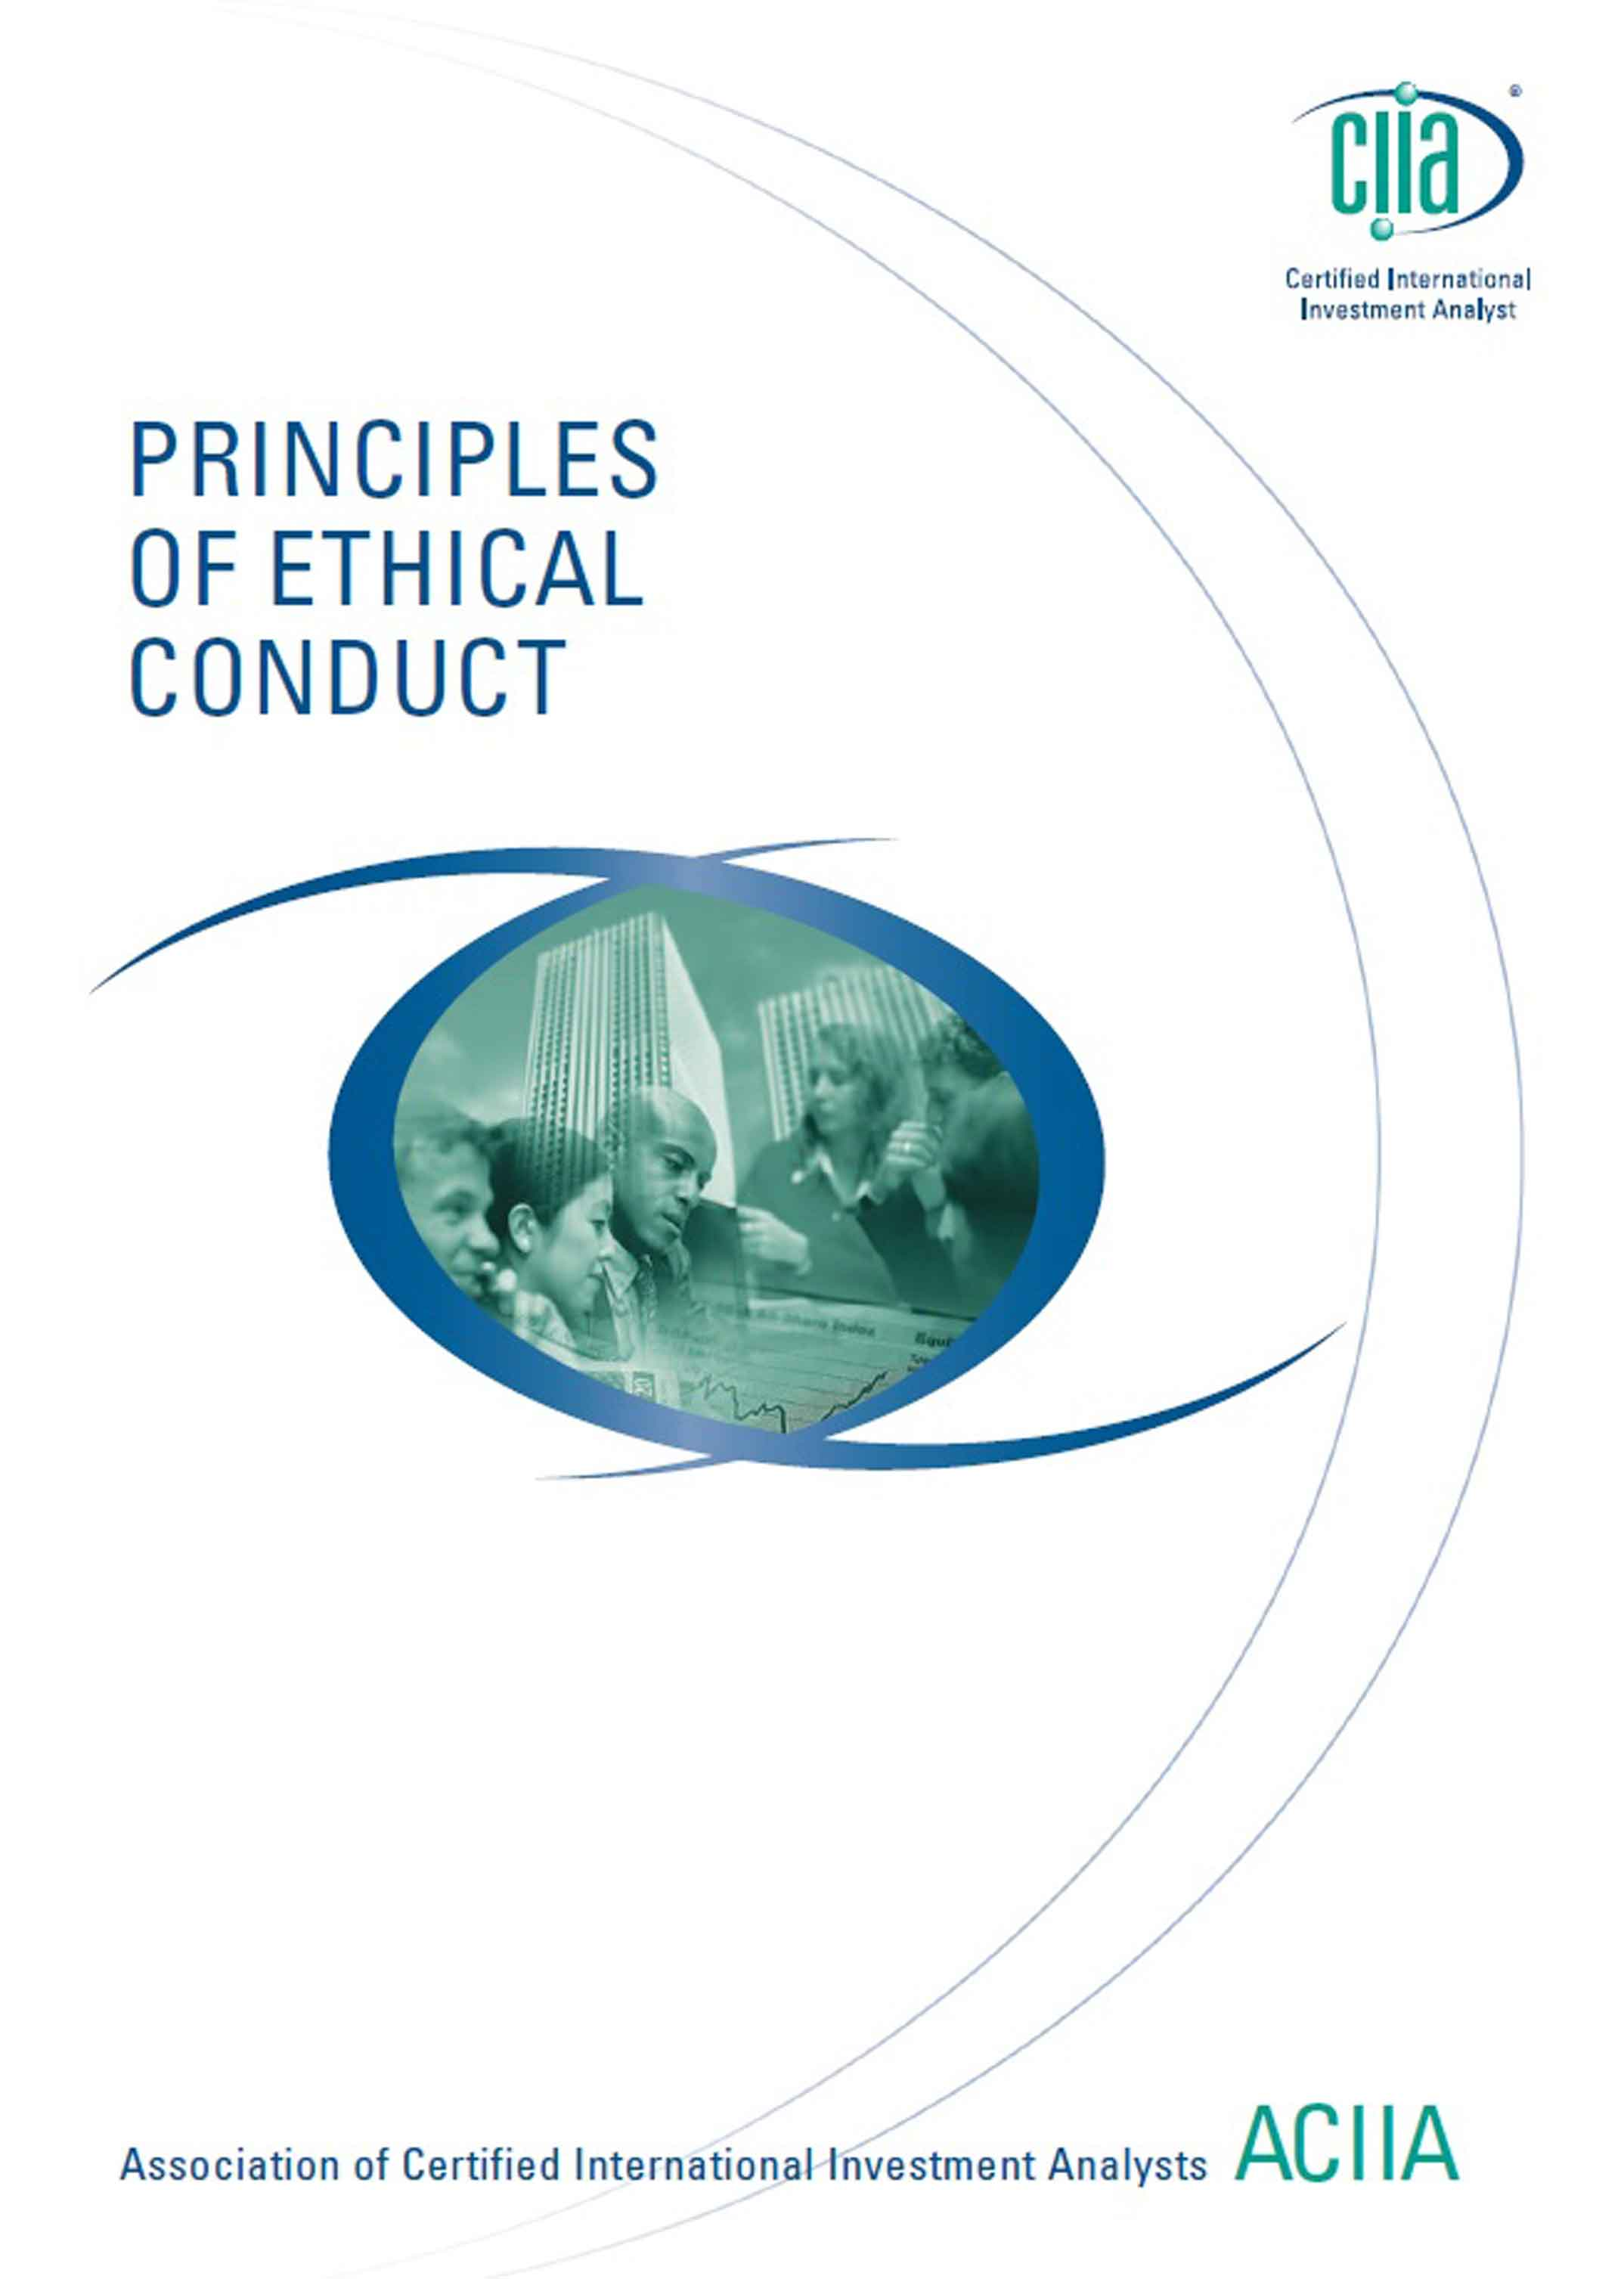 ACIIA Principles of Ethical Conduct (英語原文)